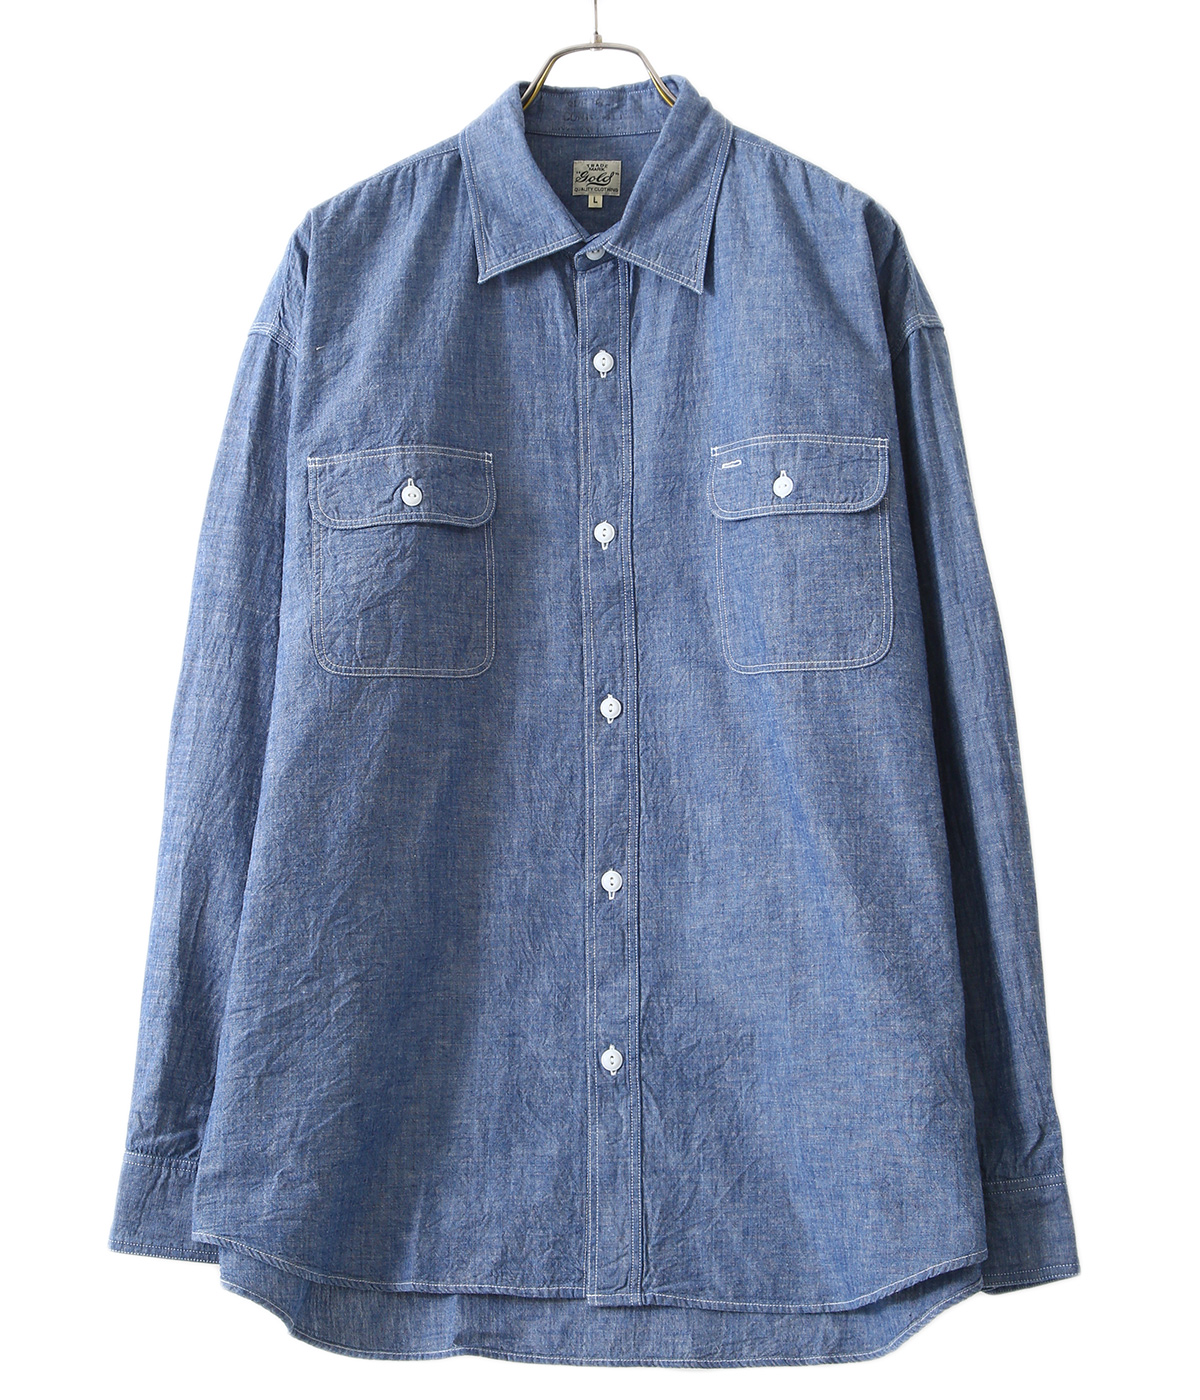 【予約】CHAMBRAY BIG WORK SHIRT